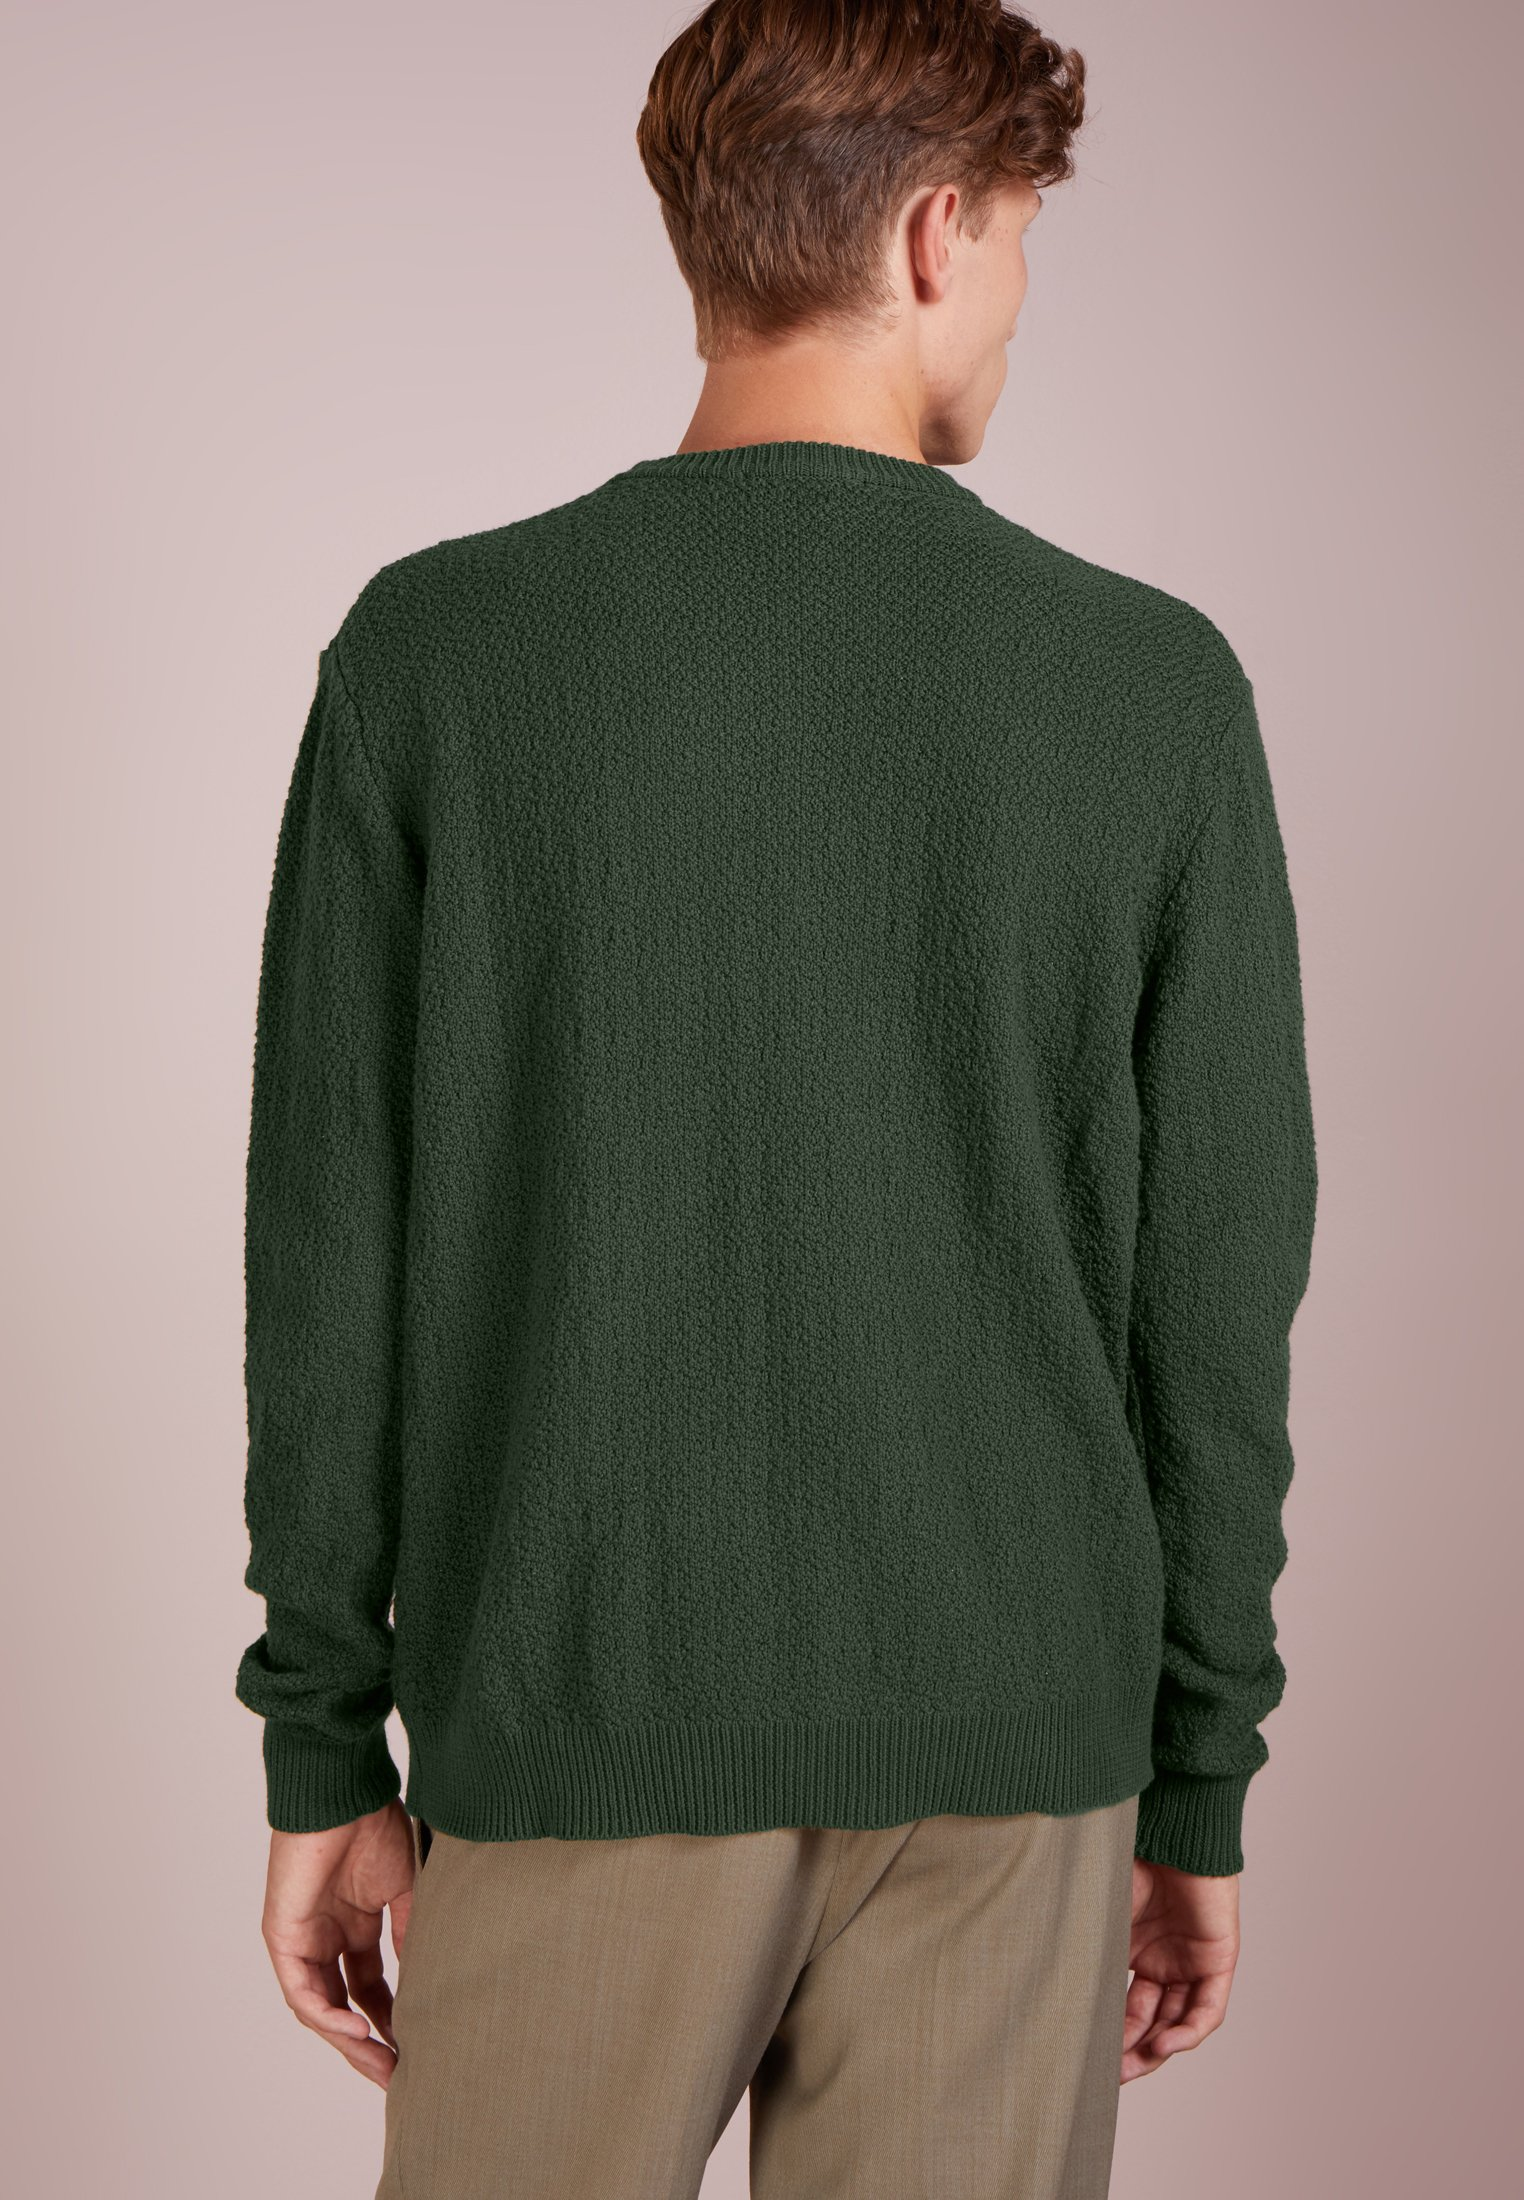 BrianPullover Bruuns Forest BrianPullover Bruuns Forest Bazaar Green Bazaar Bazaar BrianPullover Forest Bruuns Green Yf76ybg